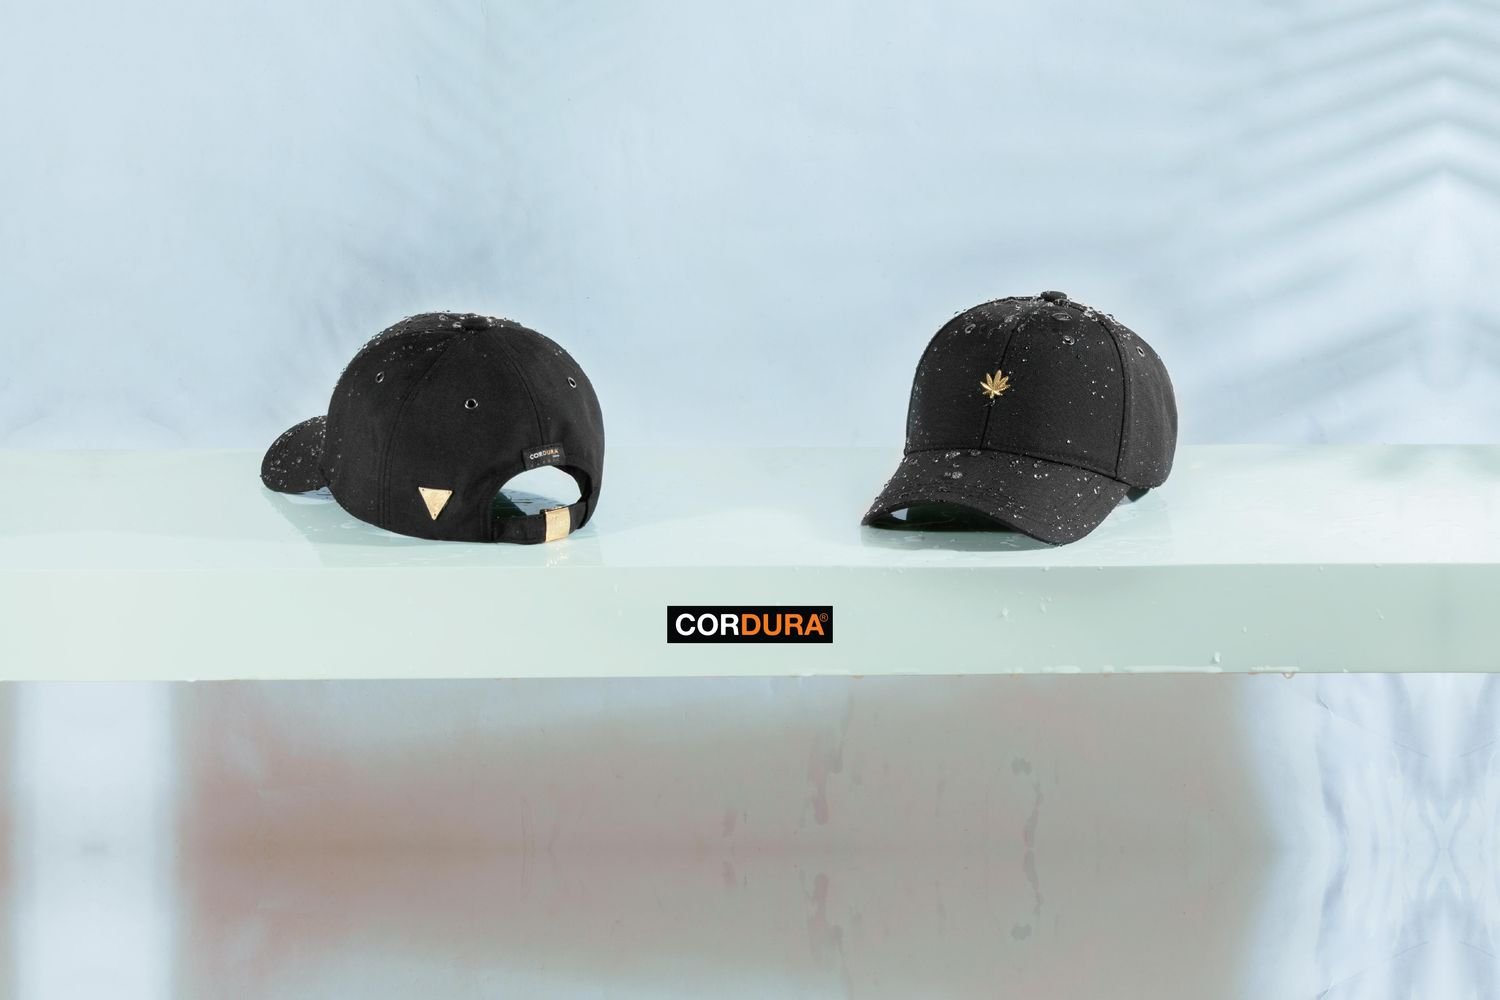 Hater Snapback - The most wanted hat | HATer Cordura Gold Cannabis Cap